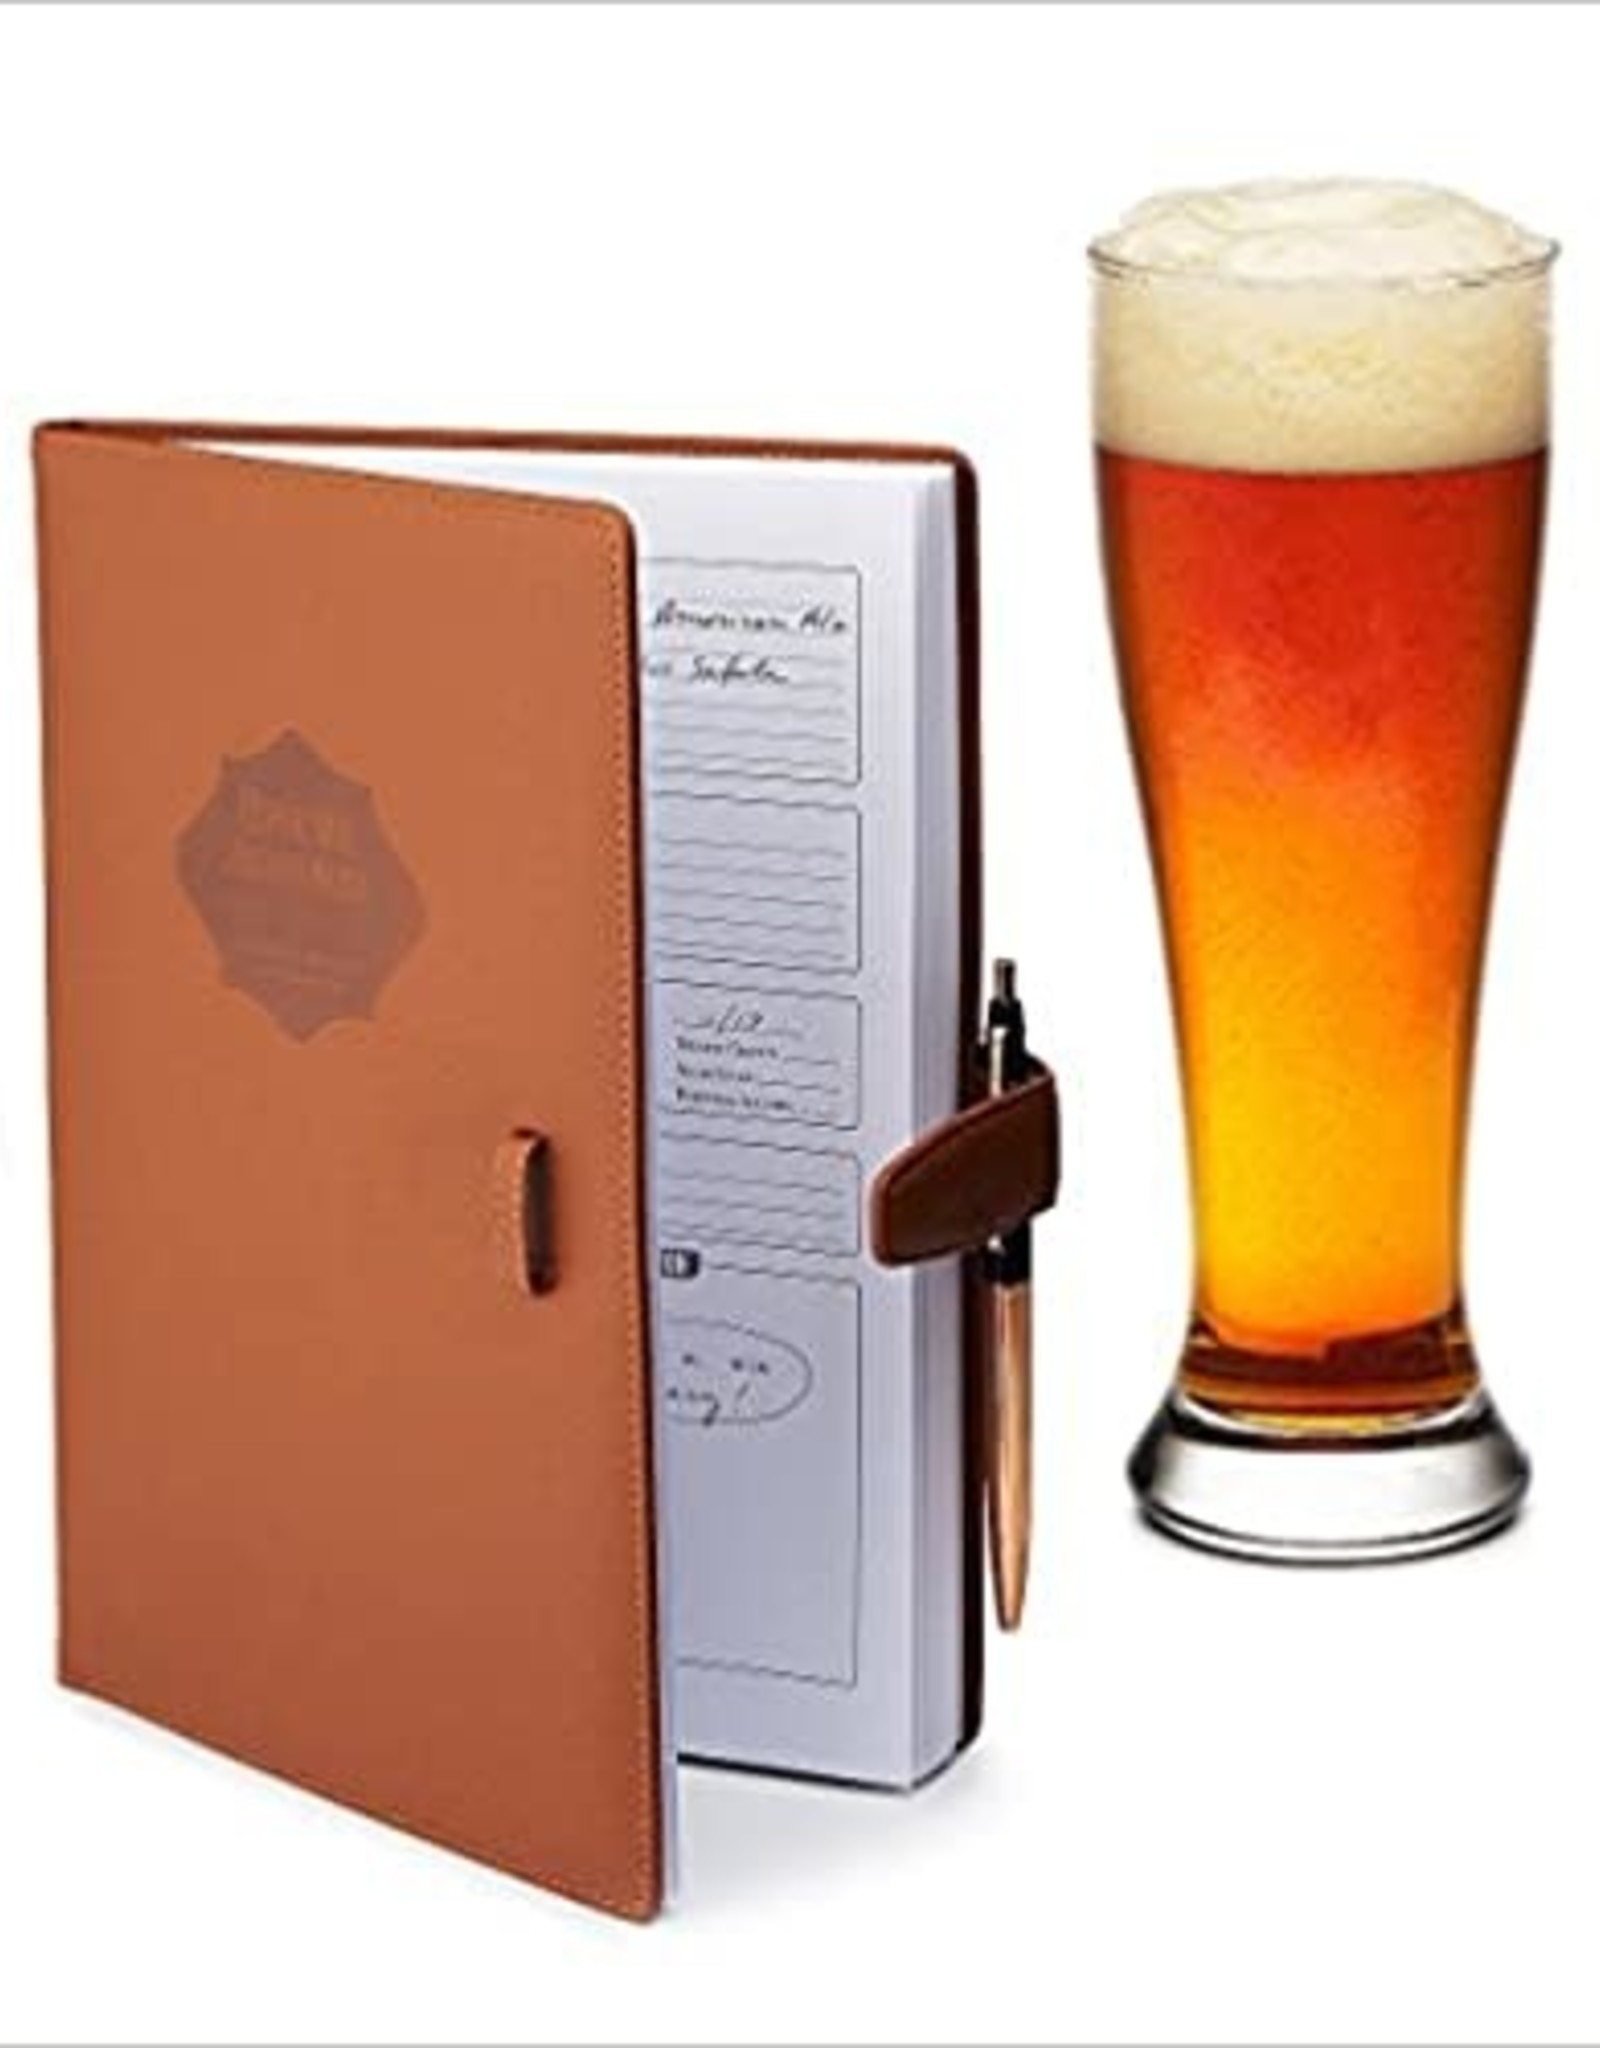 Home brew Journal for Craft Beer Homebrewers